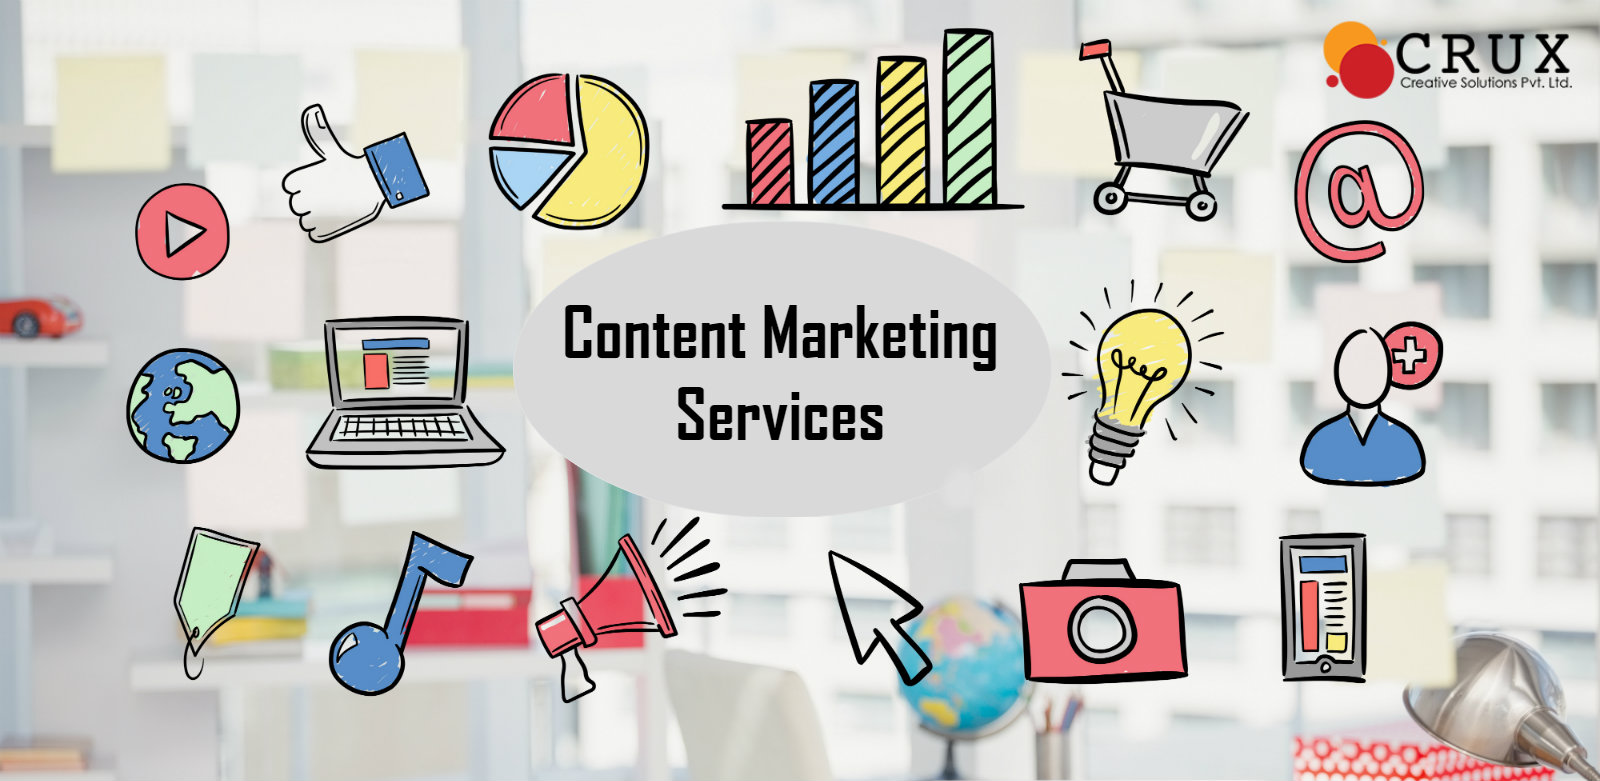 content marketing services in delhi ncr